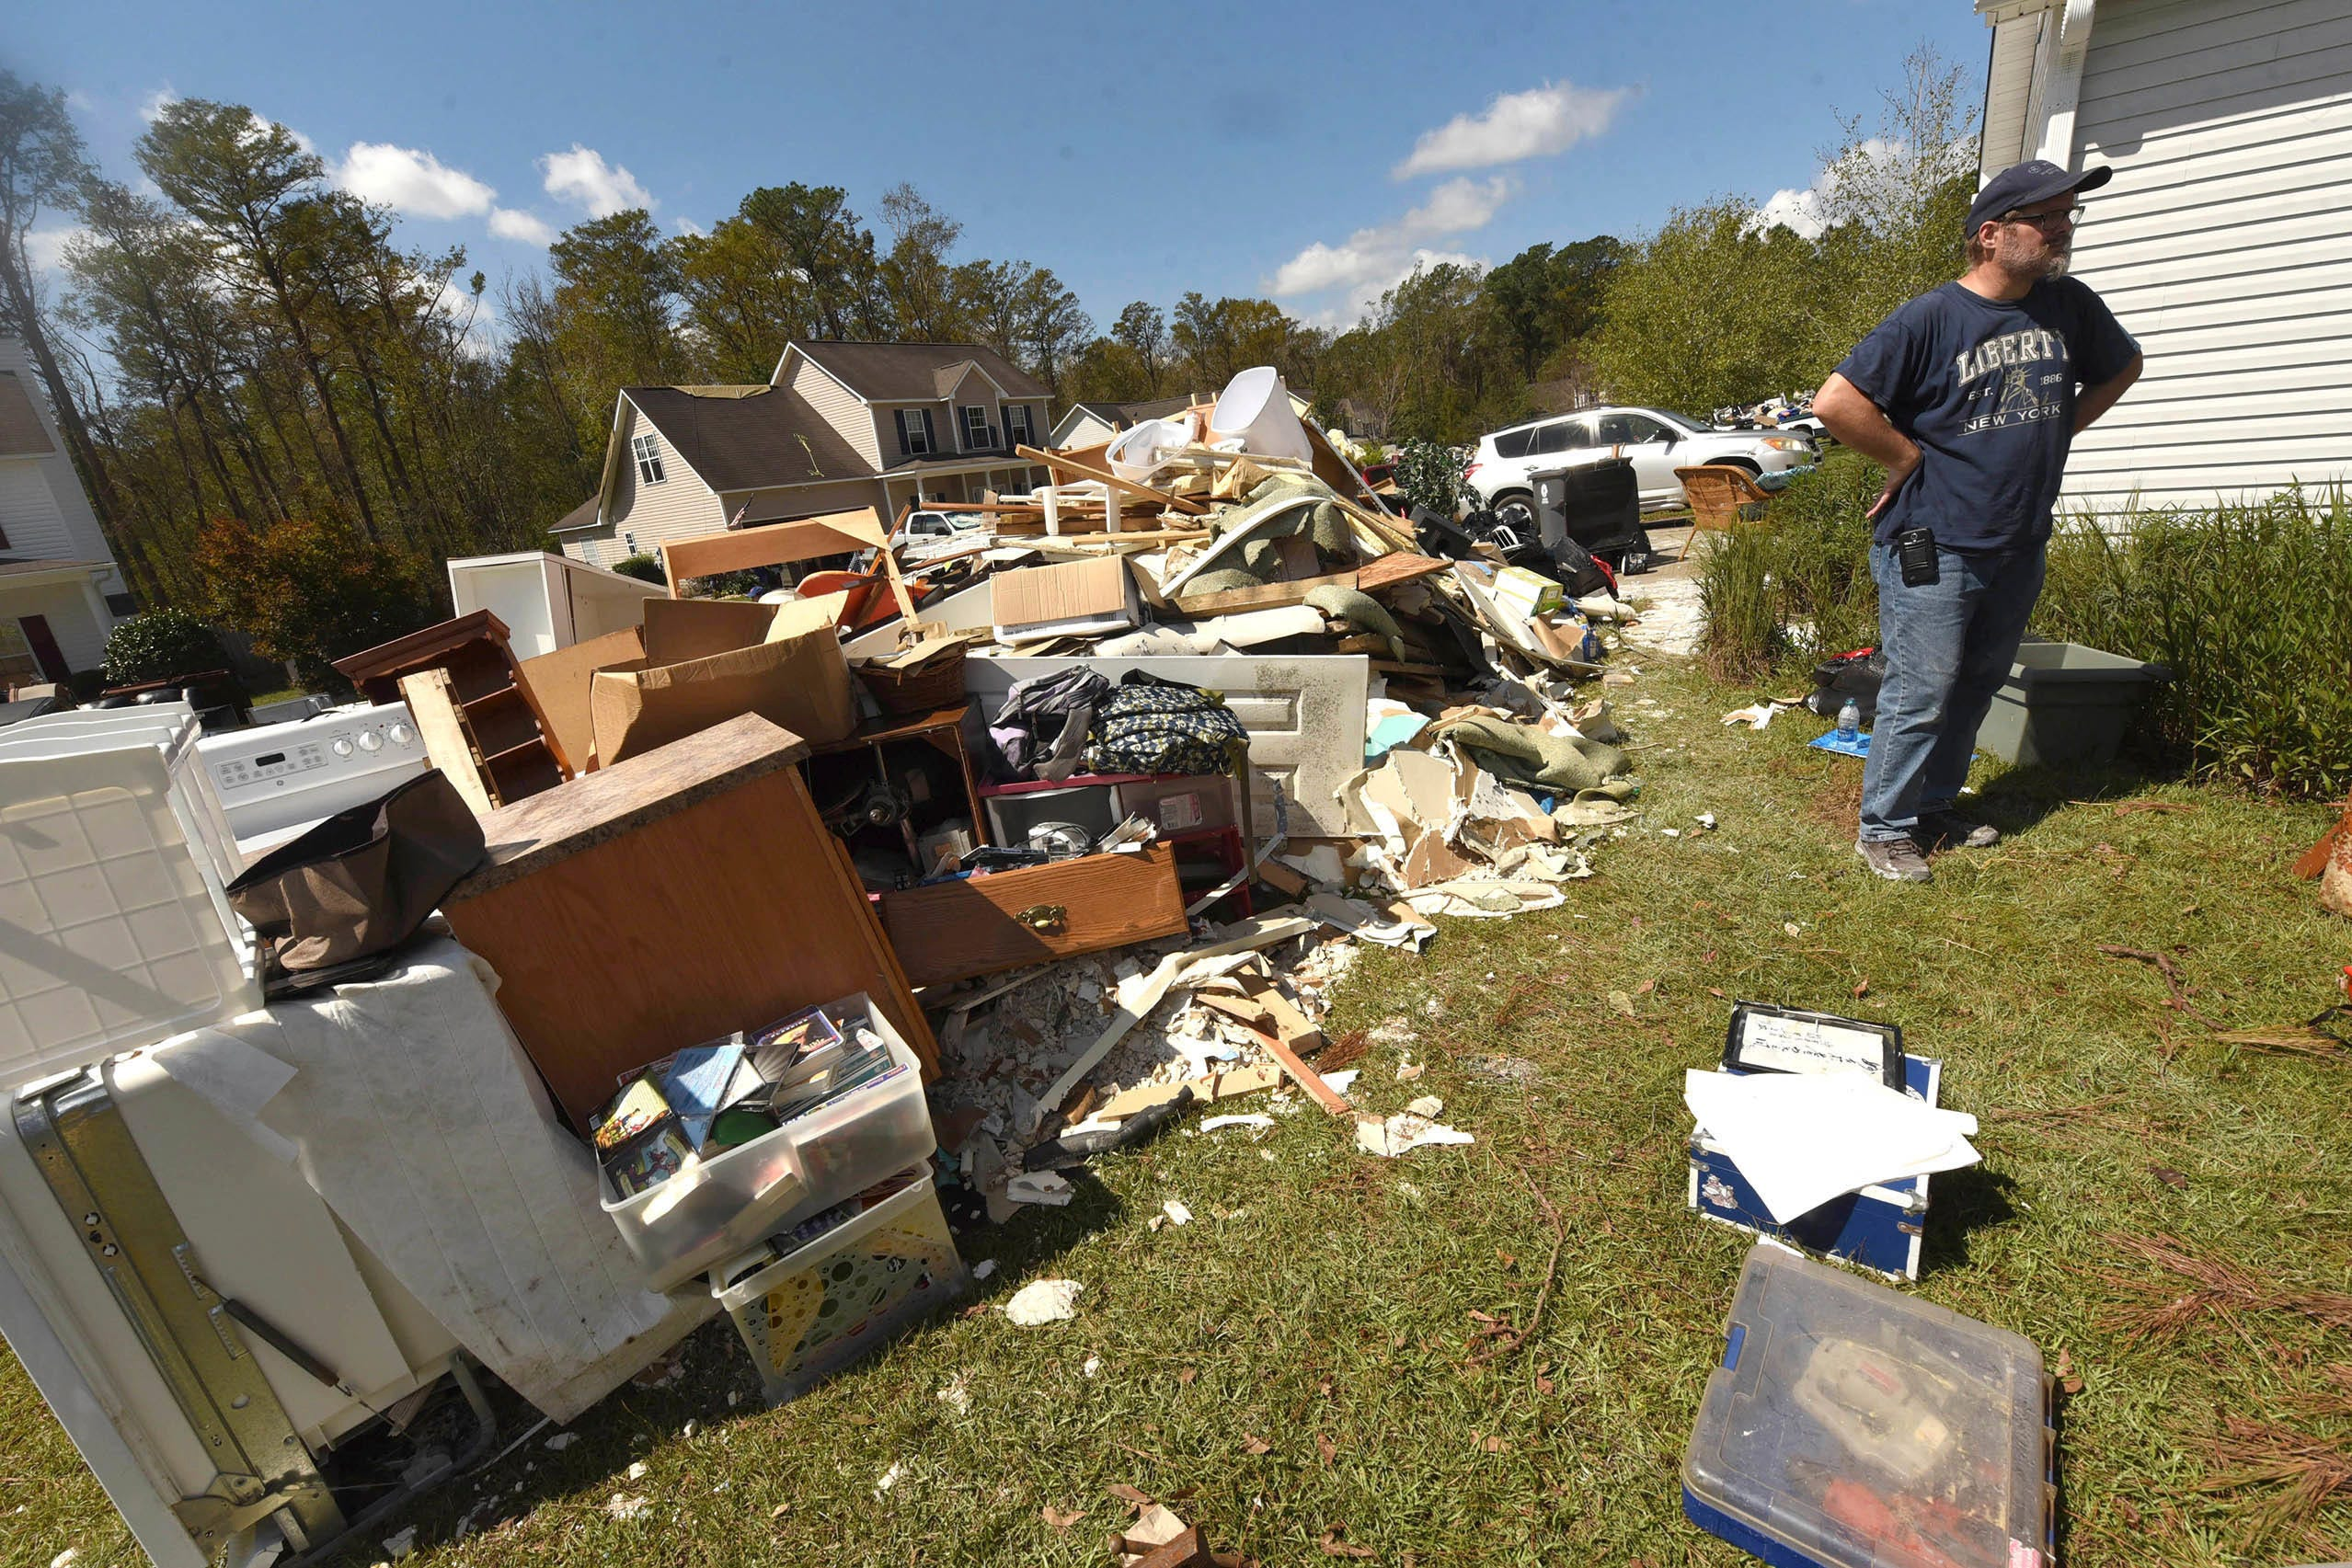 Brian Morris looks at the debris from his home in the Stoney Creek Plantation neighborhood Wednesday, Sept. 26, 2018, in Leland, N.C. Many of the homes here were flooded through their bottom floors due to rains from Hurricane Florence.